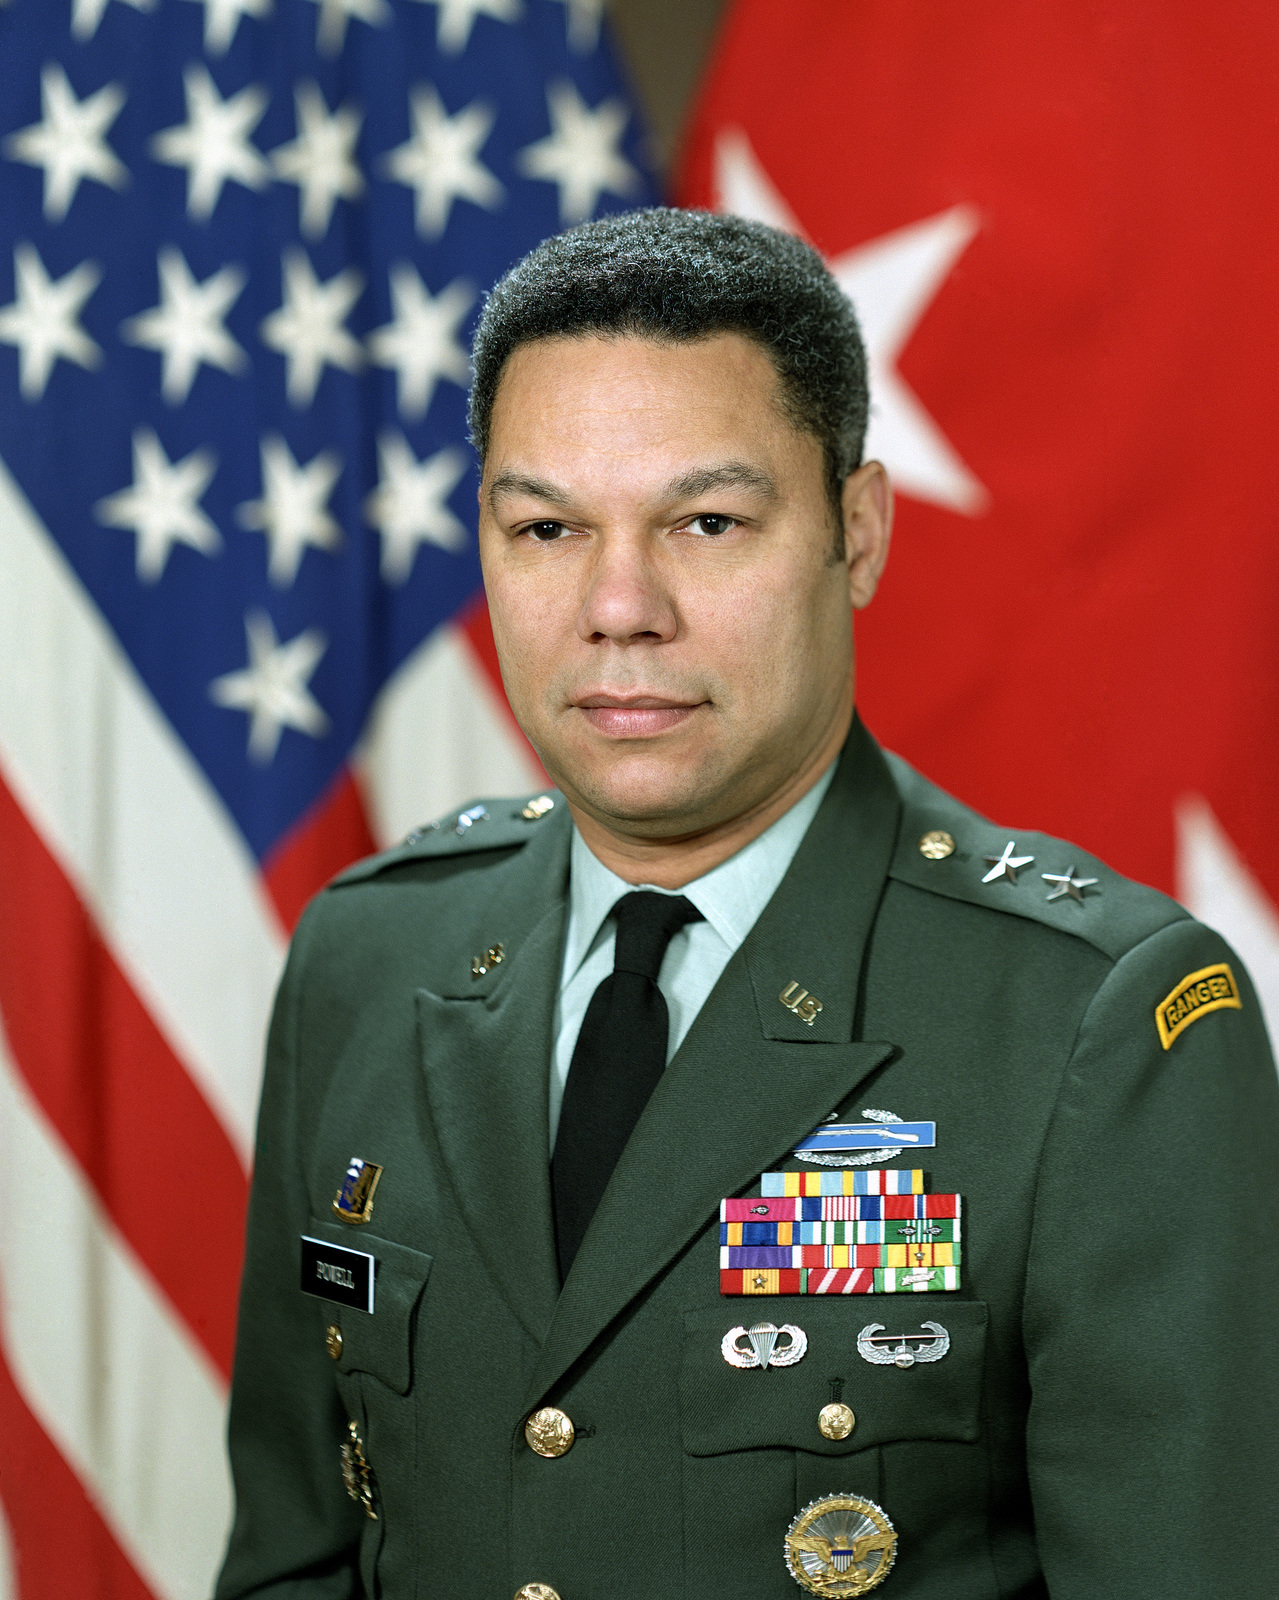 Major General (MGEN) Colin L. Powell, USA (uncovered)